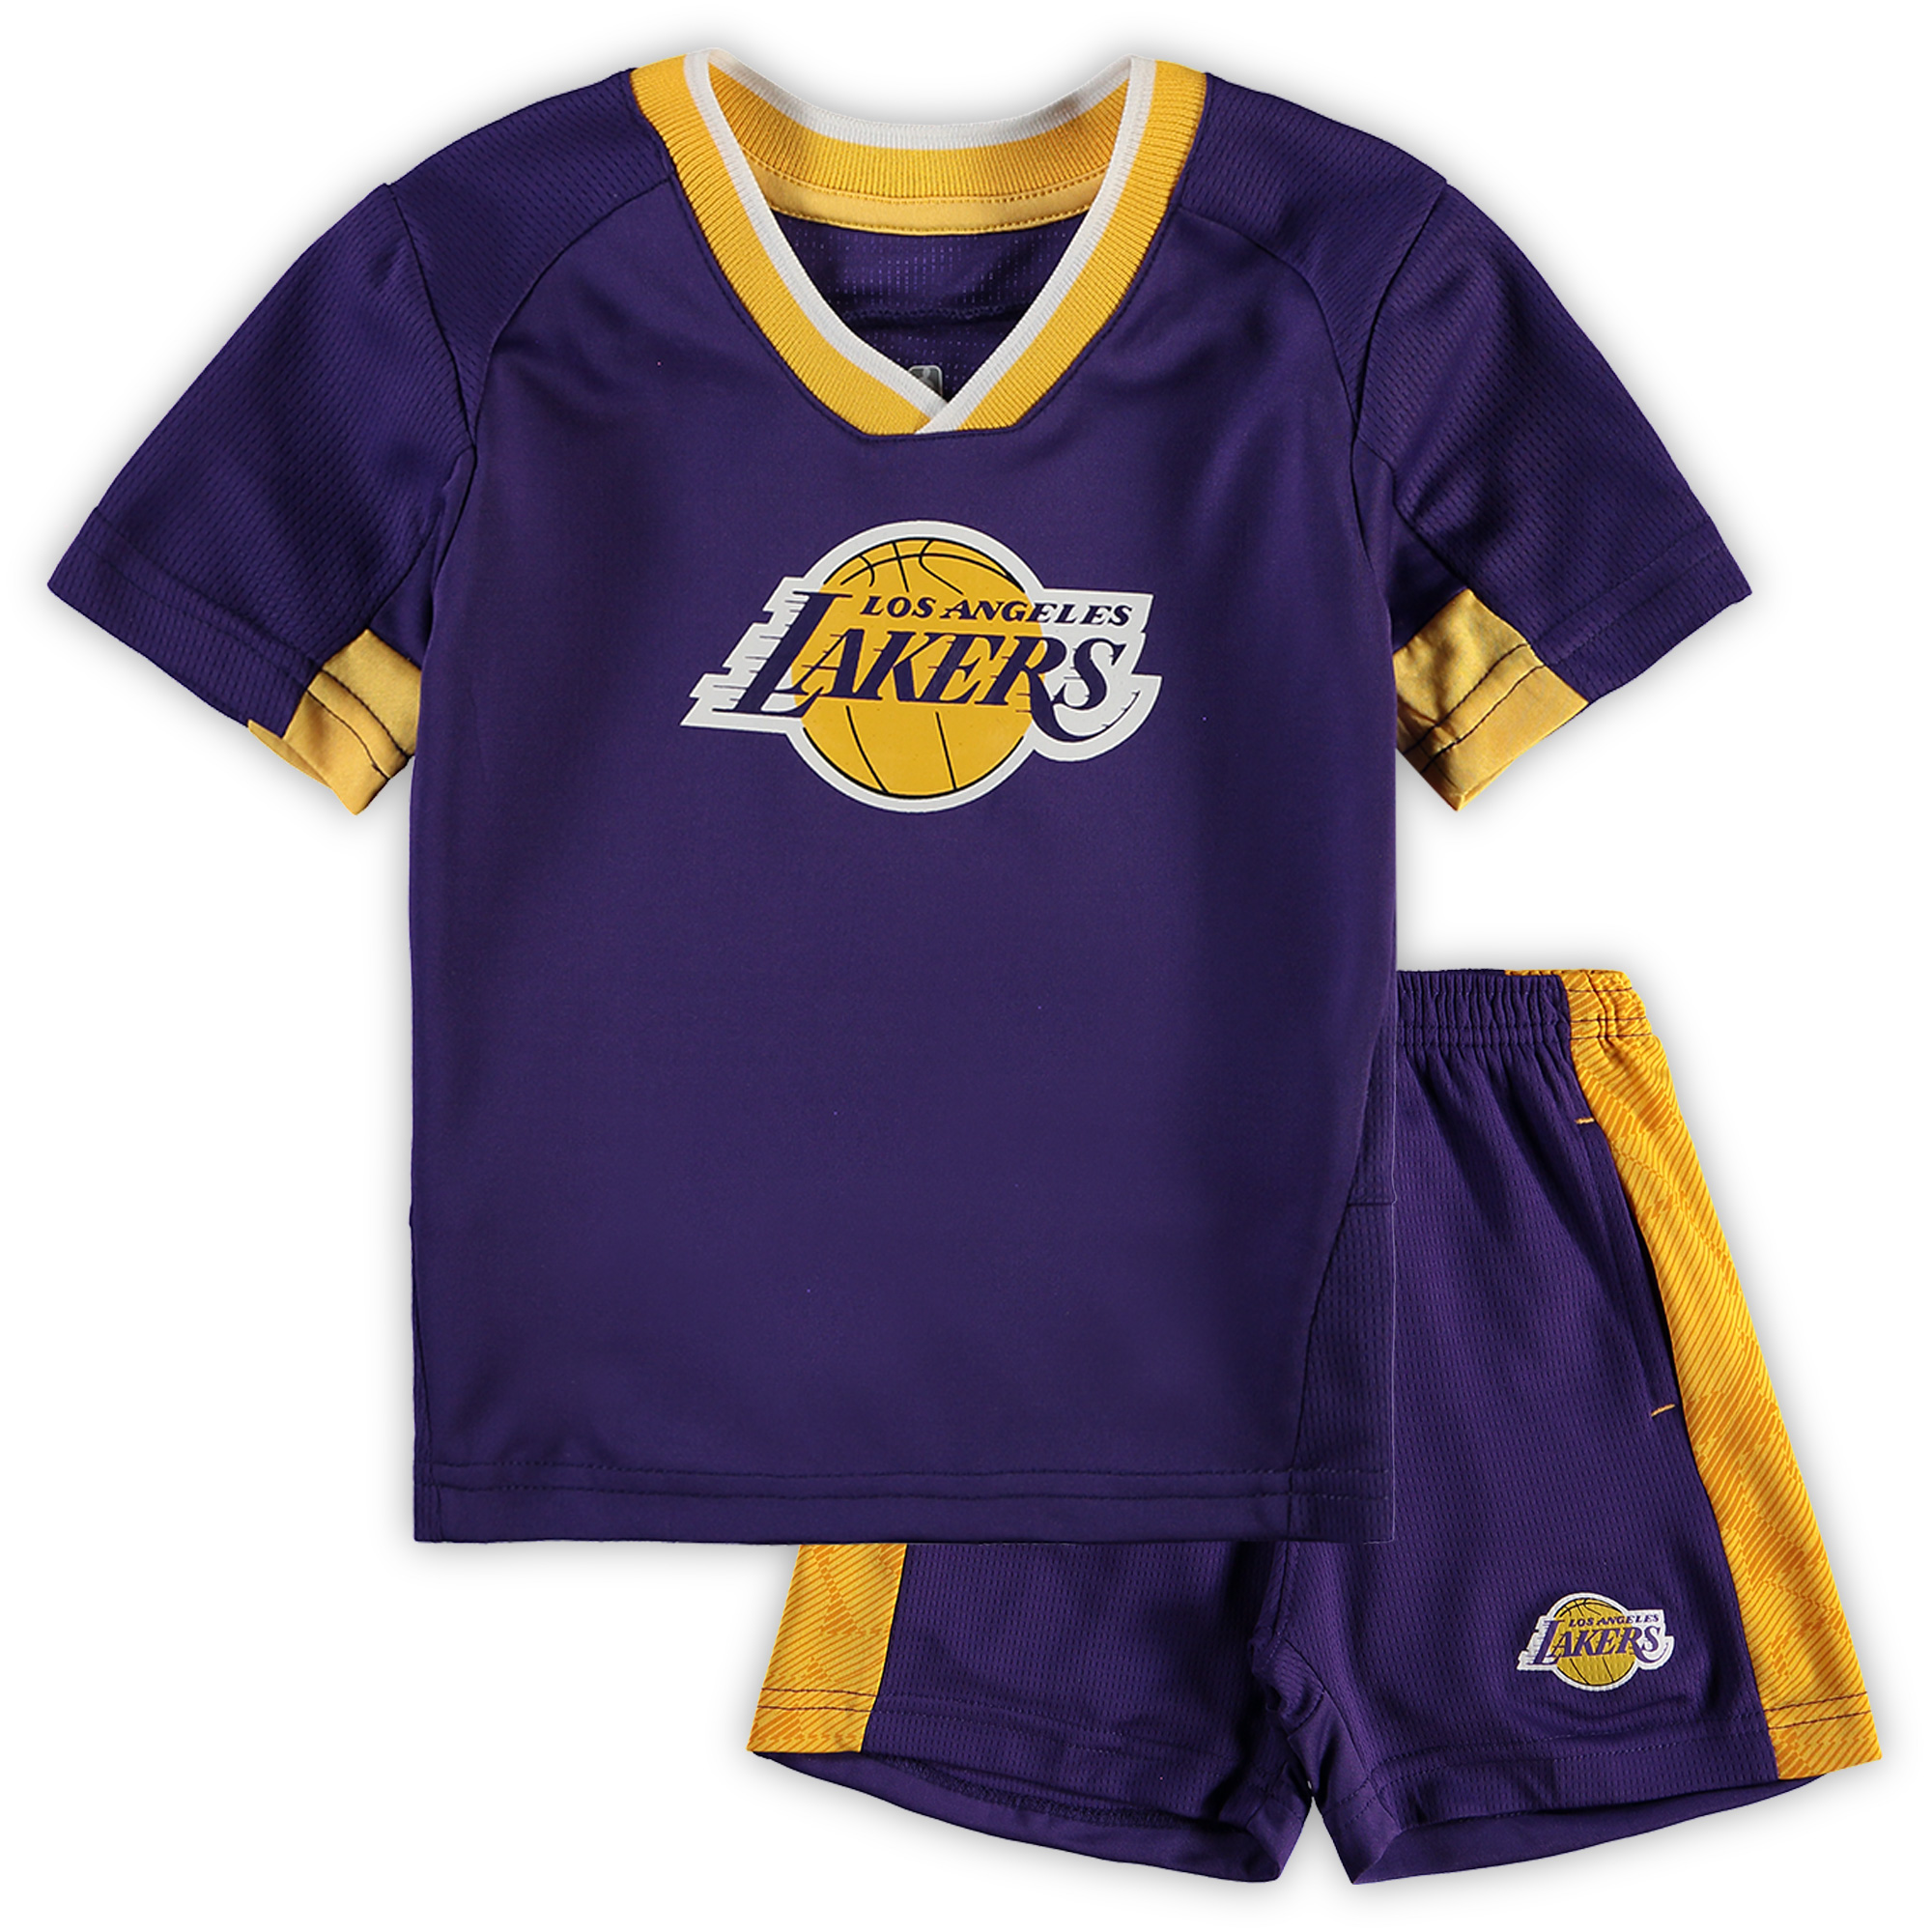 Los Angeles Lakers Preschool & Toddler Double Dribble T-Shirt & Shorts Set - Purple